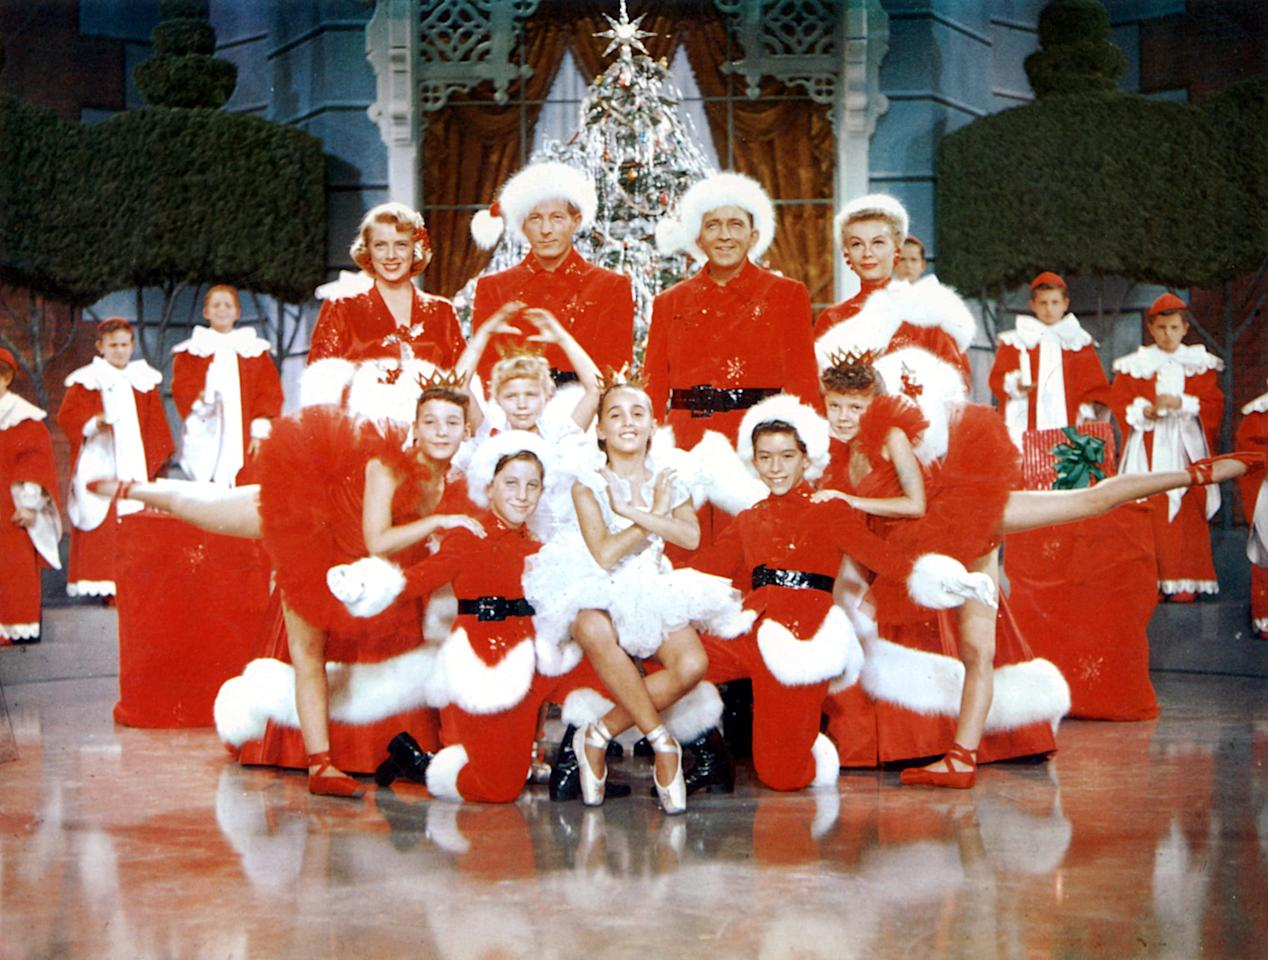 """<p>Each year, you hear Bing Crosby crooning on the radio, so why not watch him in his wonderfully lavish Christmas rom-com musical? In <strong>White Christmas</strong>, two war buddies turned successful producers fall for a pair of sisters. One day, they stay at their former commanding officer's lodge and learn that it's about to close, so they set out to do a special performance in order to save it.</p> <p><a href=""""http://www.netflix.com/title/60003082"""" target=""""_blank"""" class=""""ga-track"""" data-ga-category=""""Related"""" data-ga-label=""""http://www.netflix.com/title/60003082"""" data-ga-action=""""In-Line Links"""">Watch <b>White Christmas</b> on Netflix</a>.</p>"""